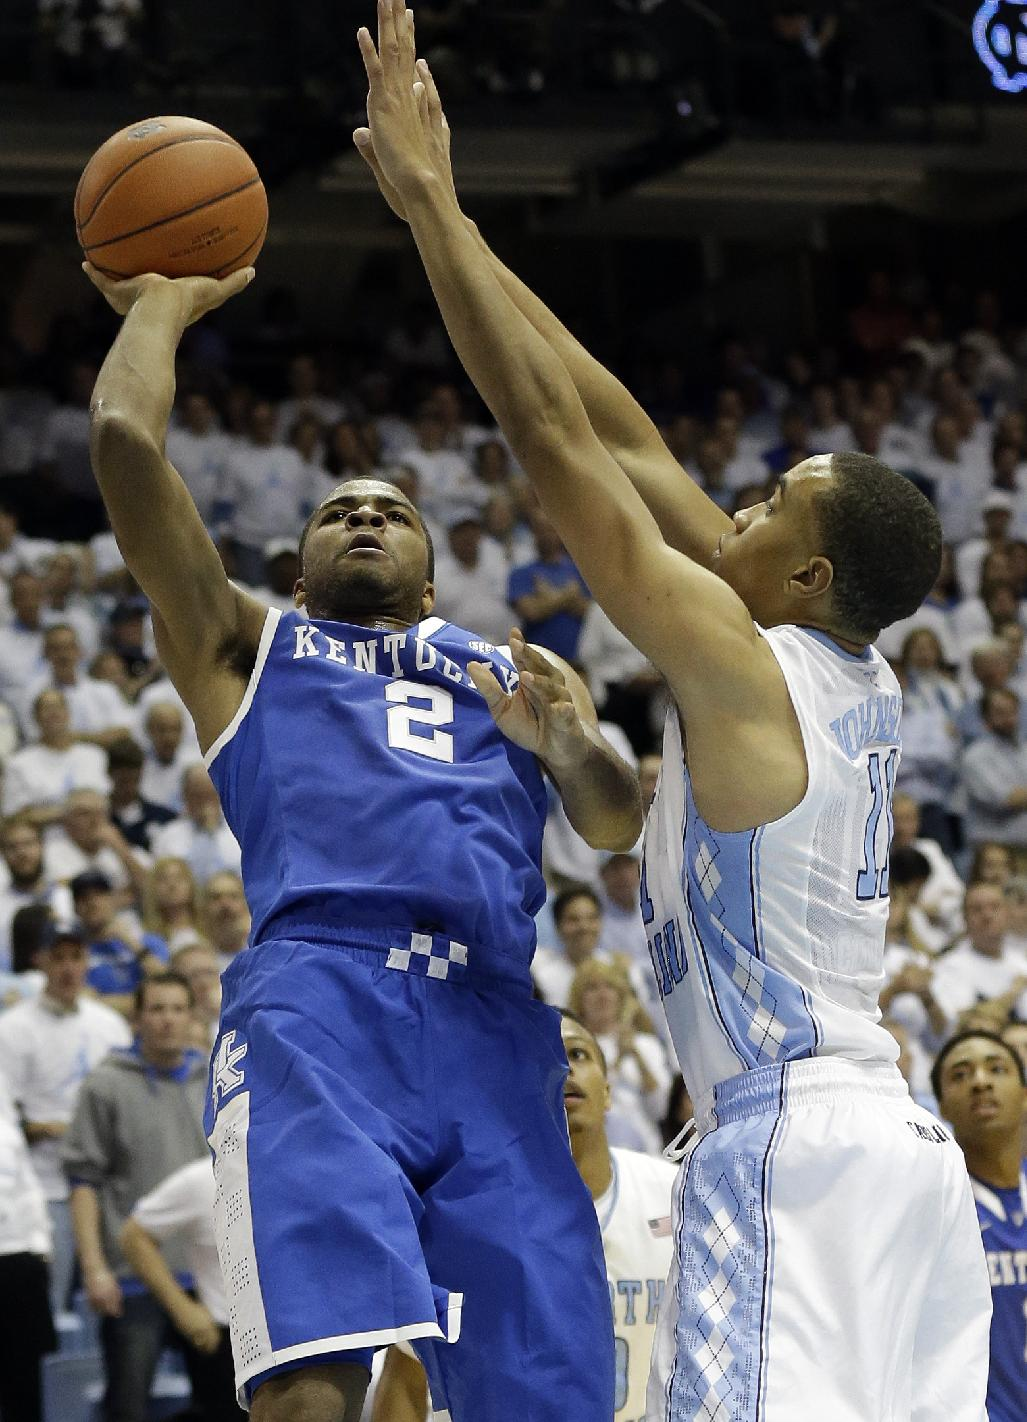 North Carolina's Brice Johnson, right, guards Kentucky's Aaron Harrison (2) during the second half of an NCAA college basketball game in Chapel Hill, N.C., Saturday, Dec. 14, 2013. North Carolina won 82-77